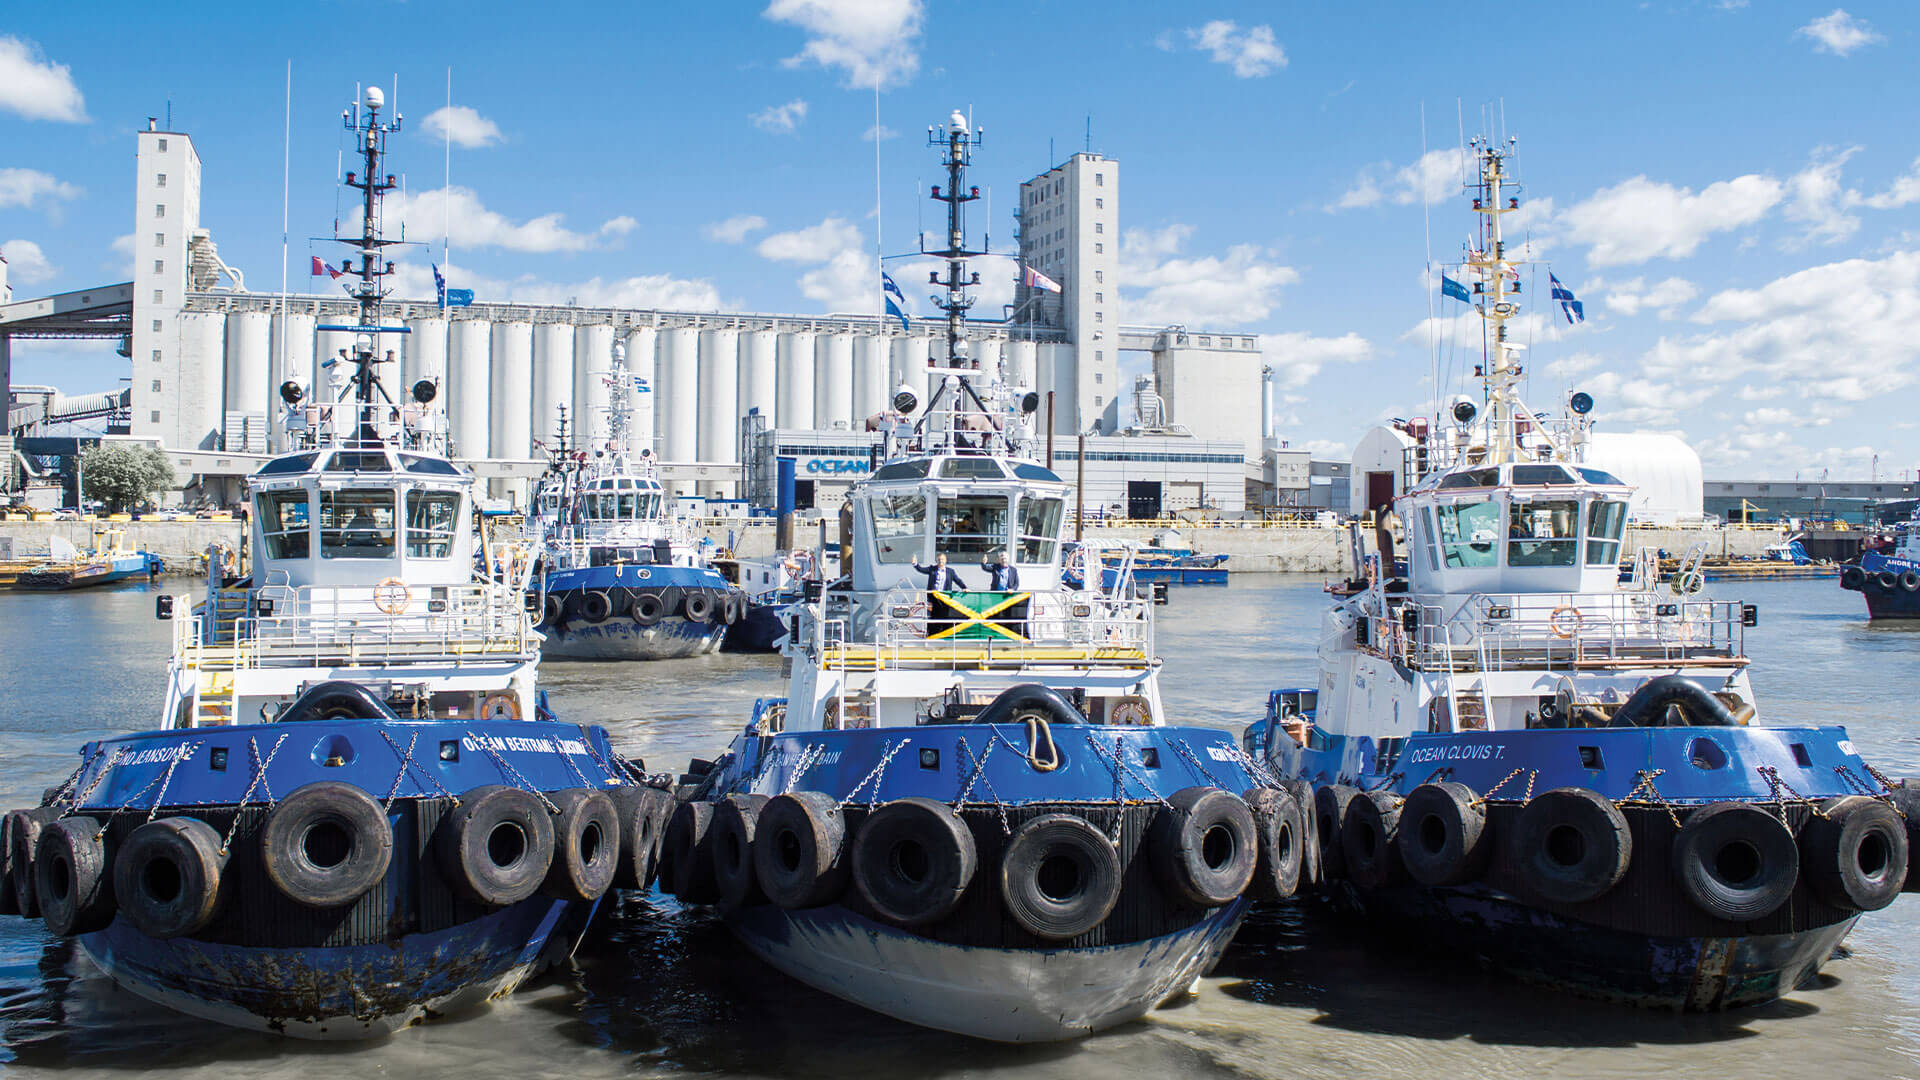 Ocean signed a 10-year contract with the port of Kingston, Jamaica, for harbour towage services.